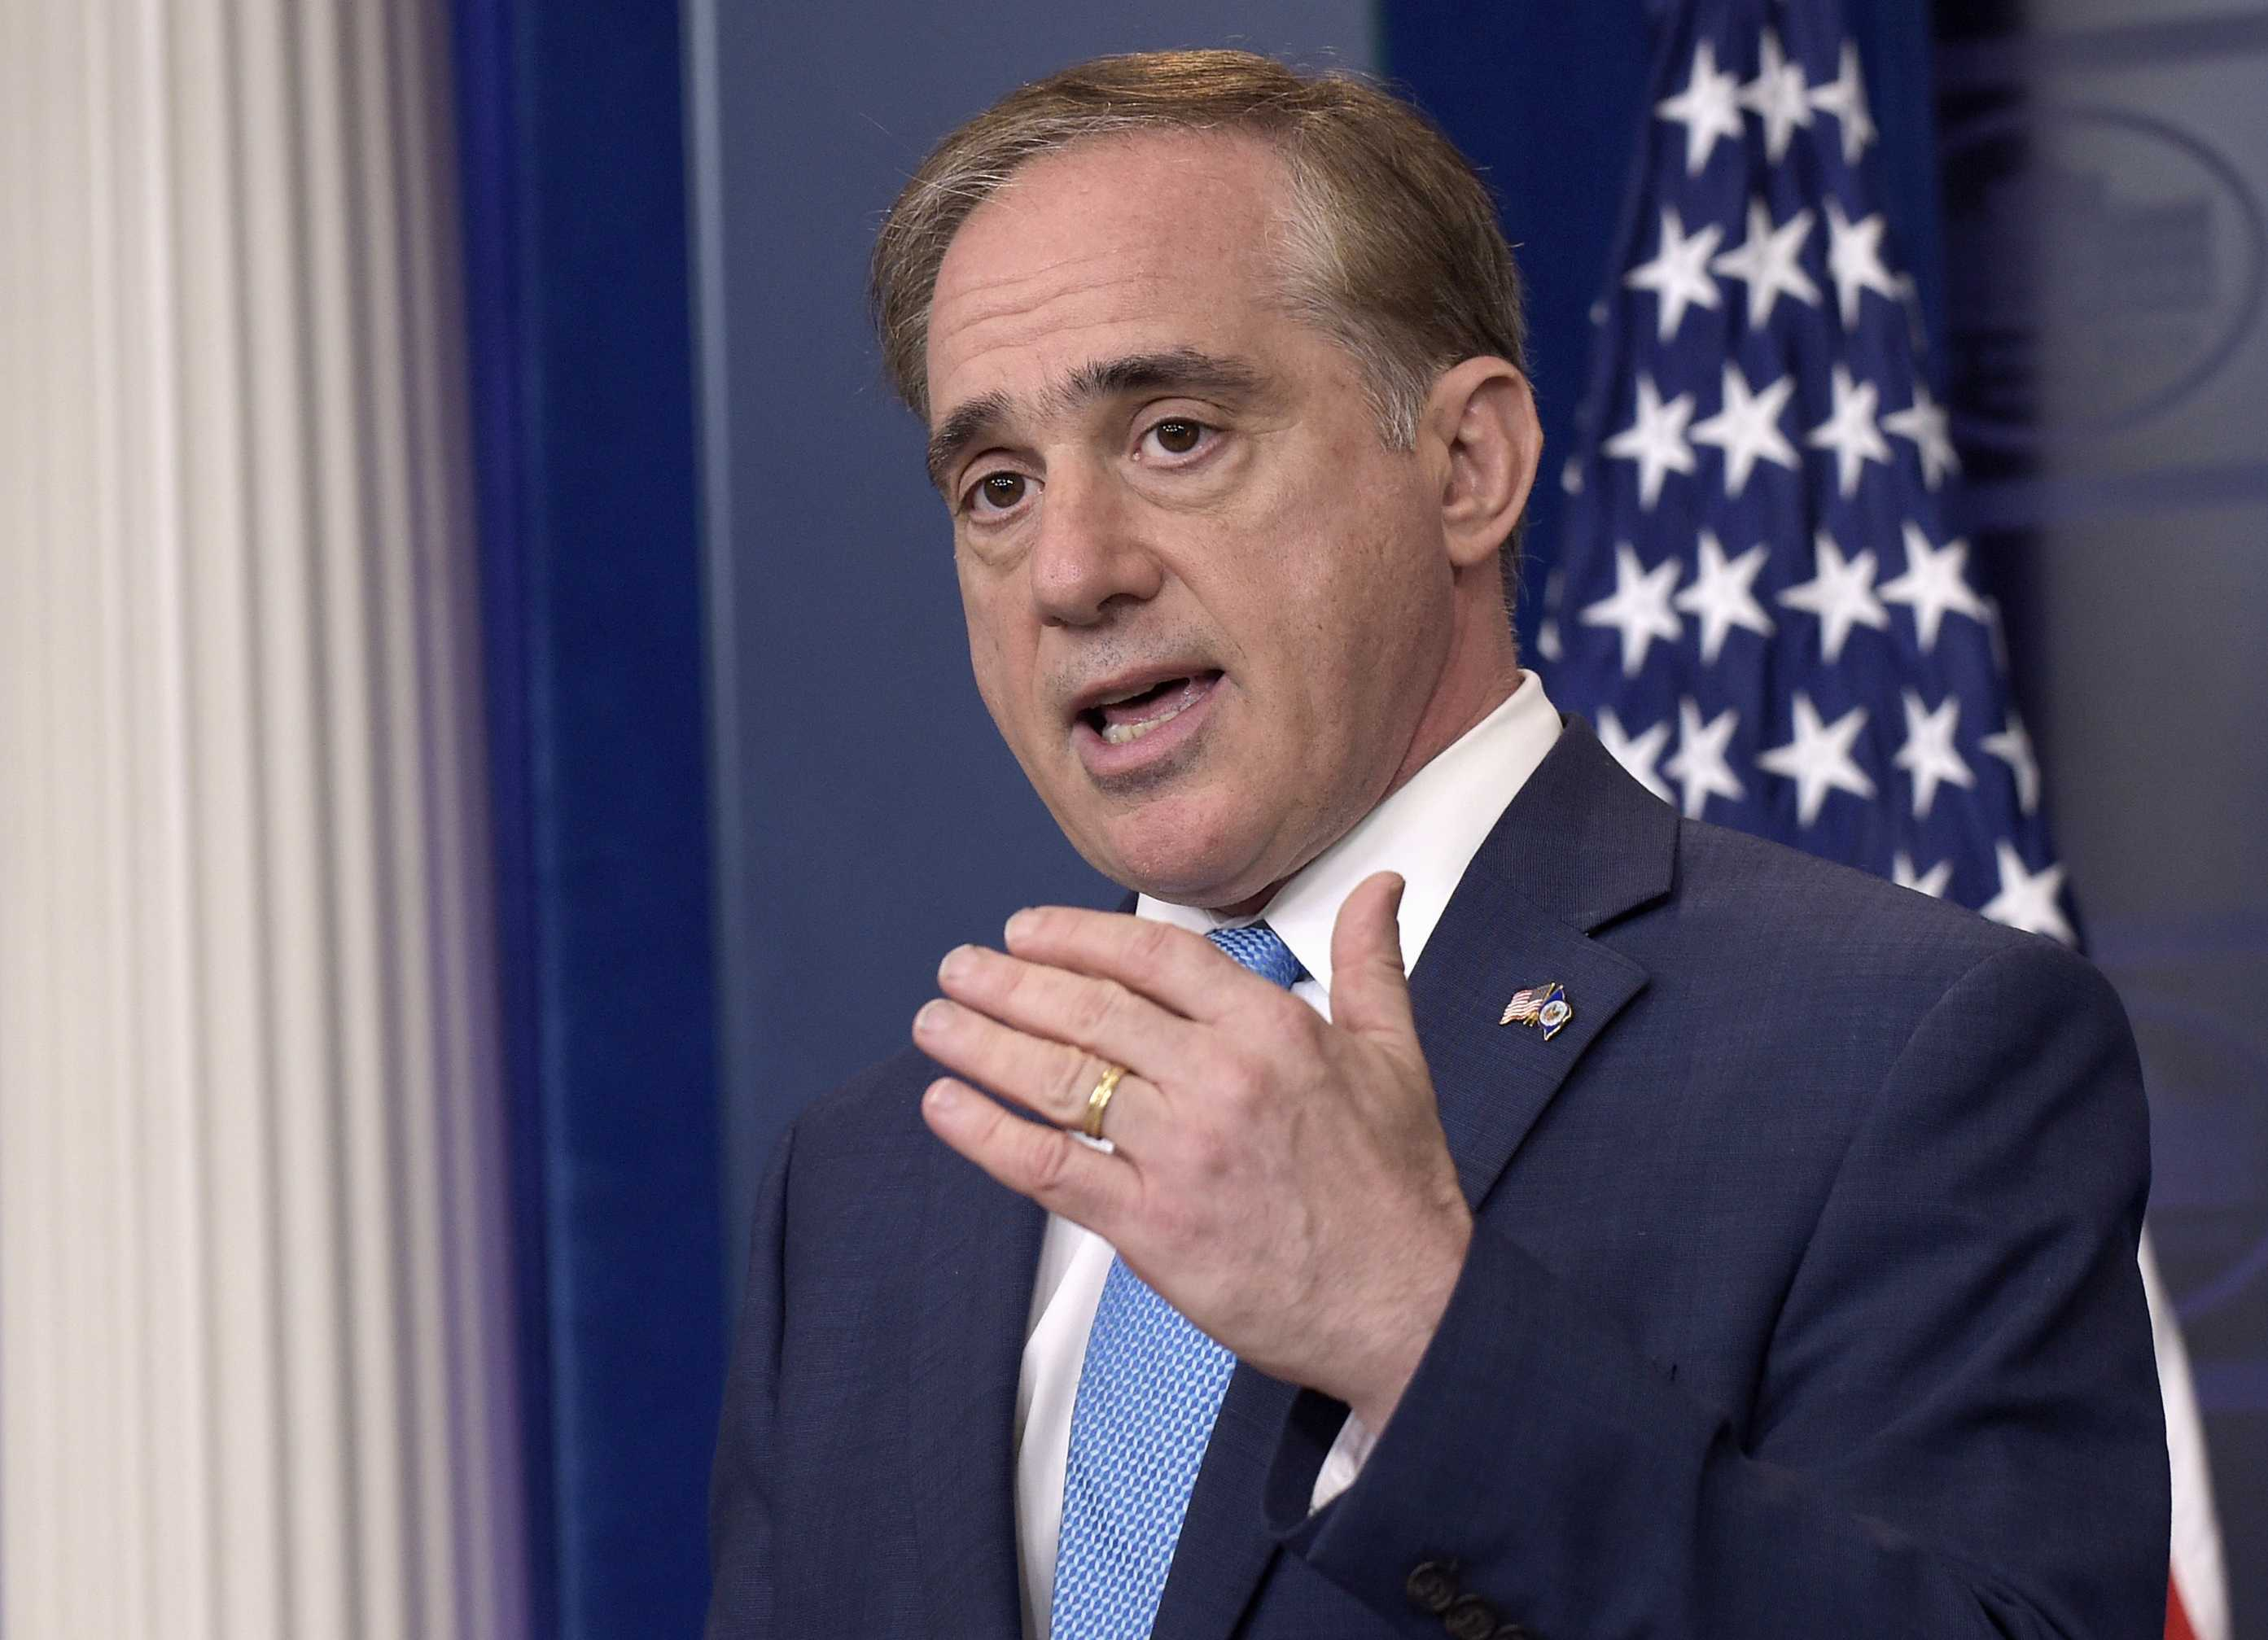 Veterans Affairs Secretary David Shulkin speaks during a briefing at the White House in Washington Wednesday